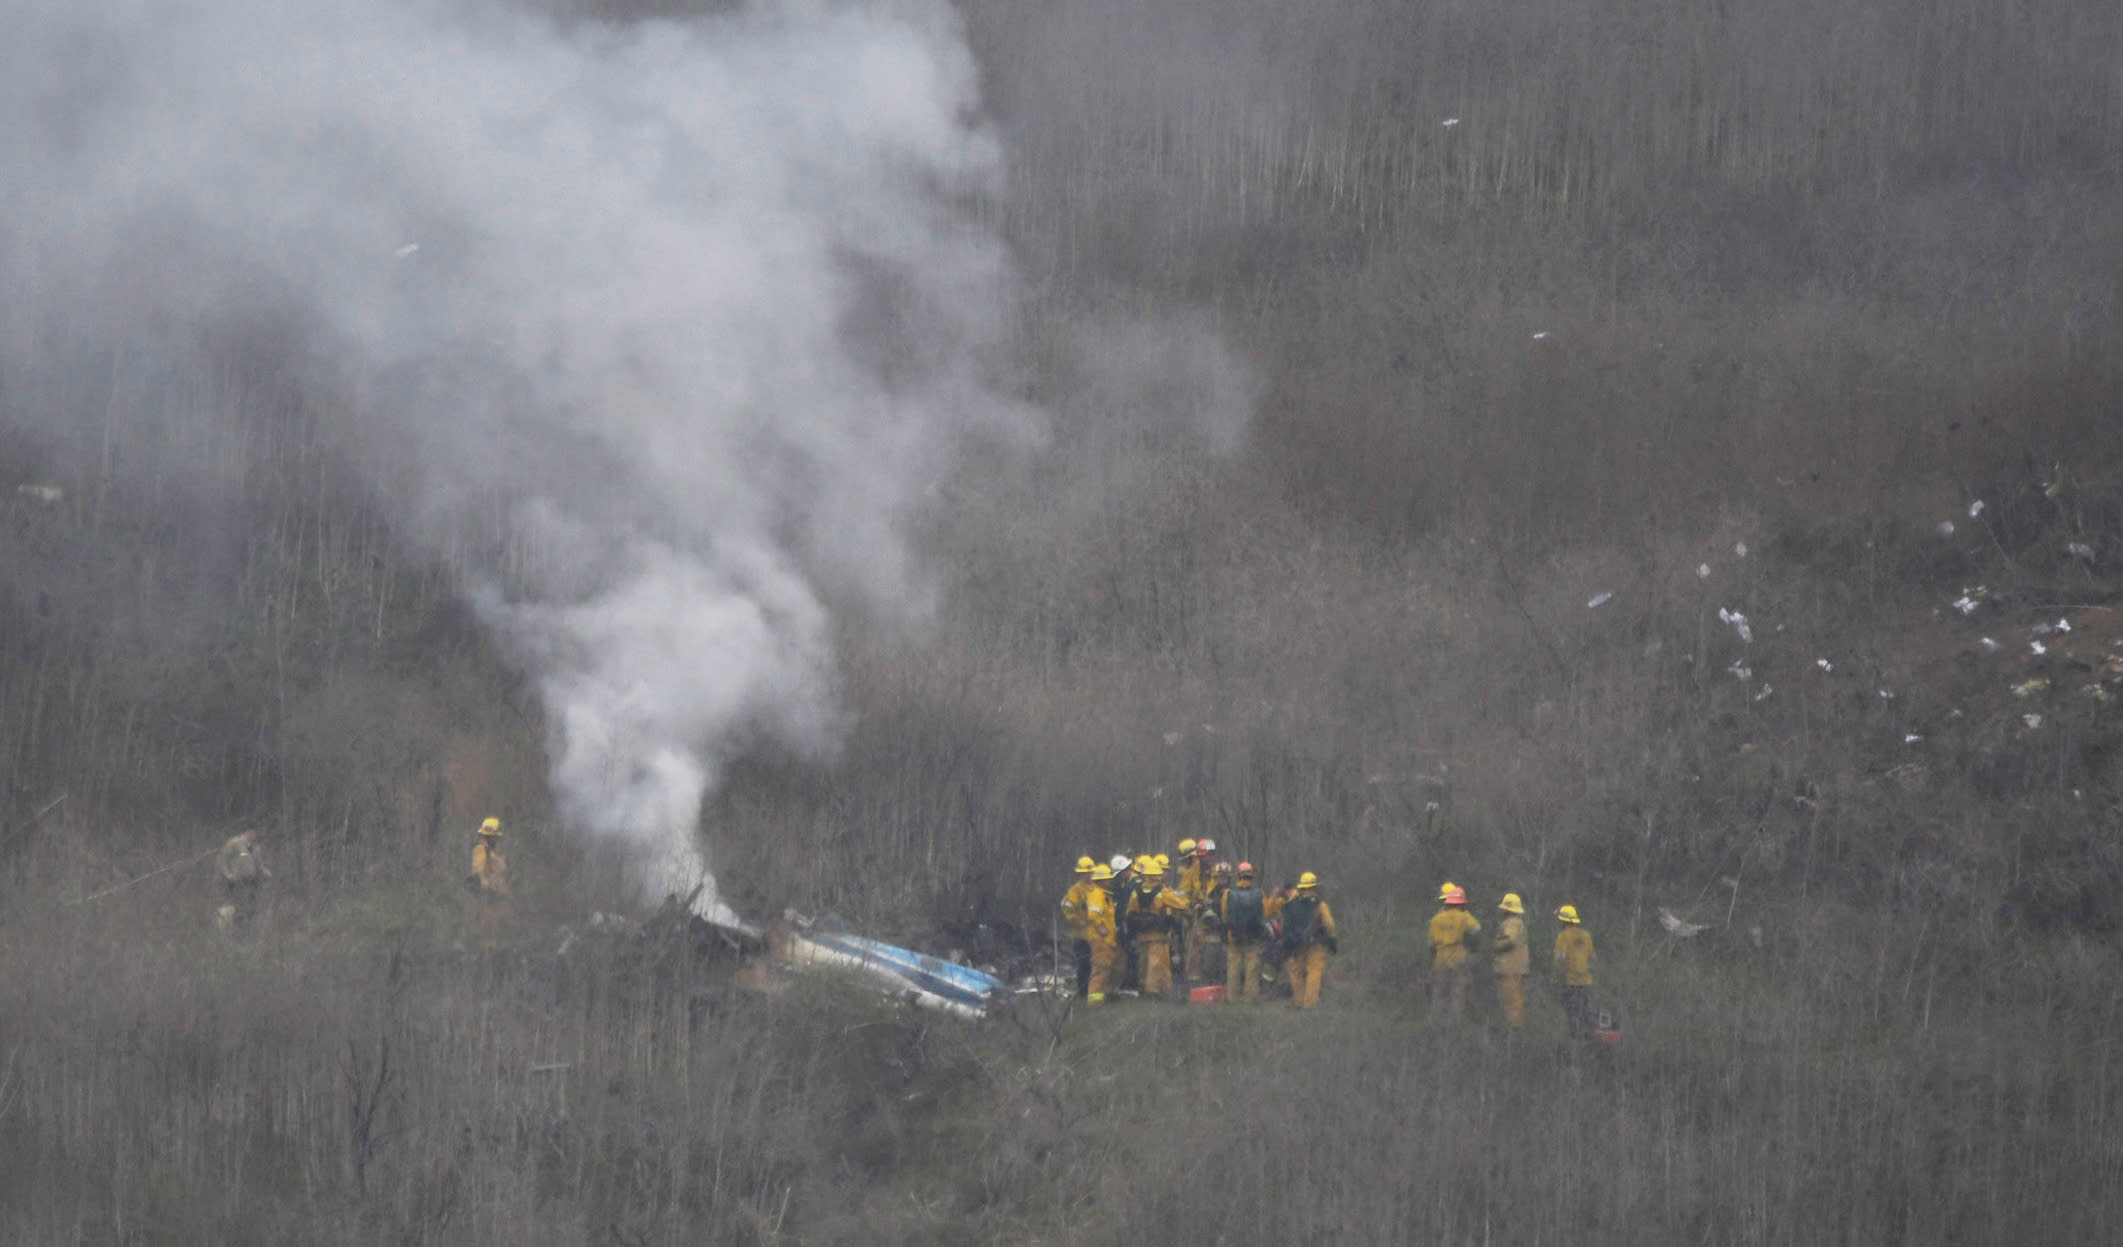 NTSB launches investigation into helicopter crash that killed Kobe Bryant, 8 others